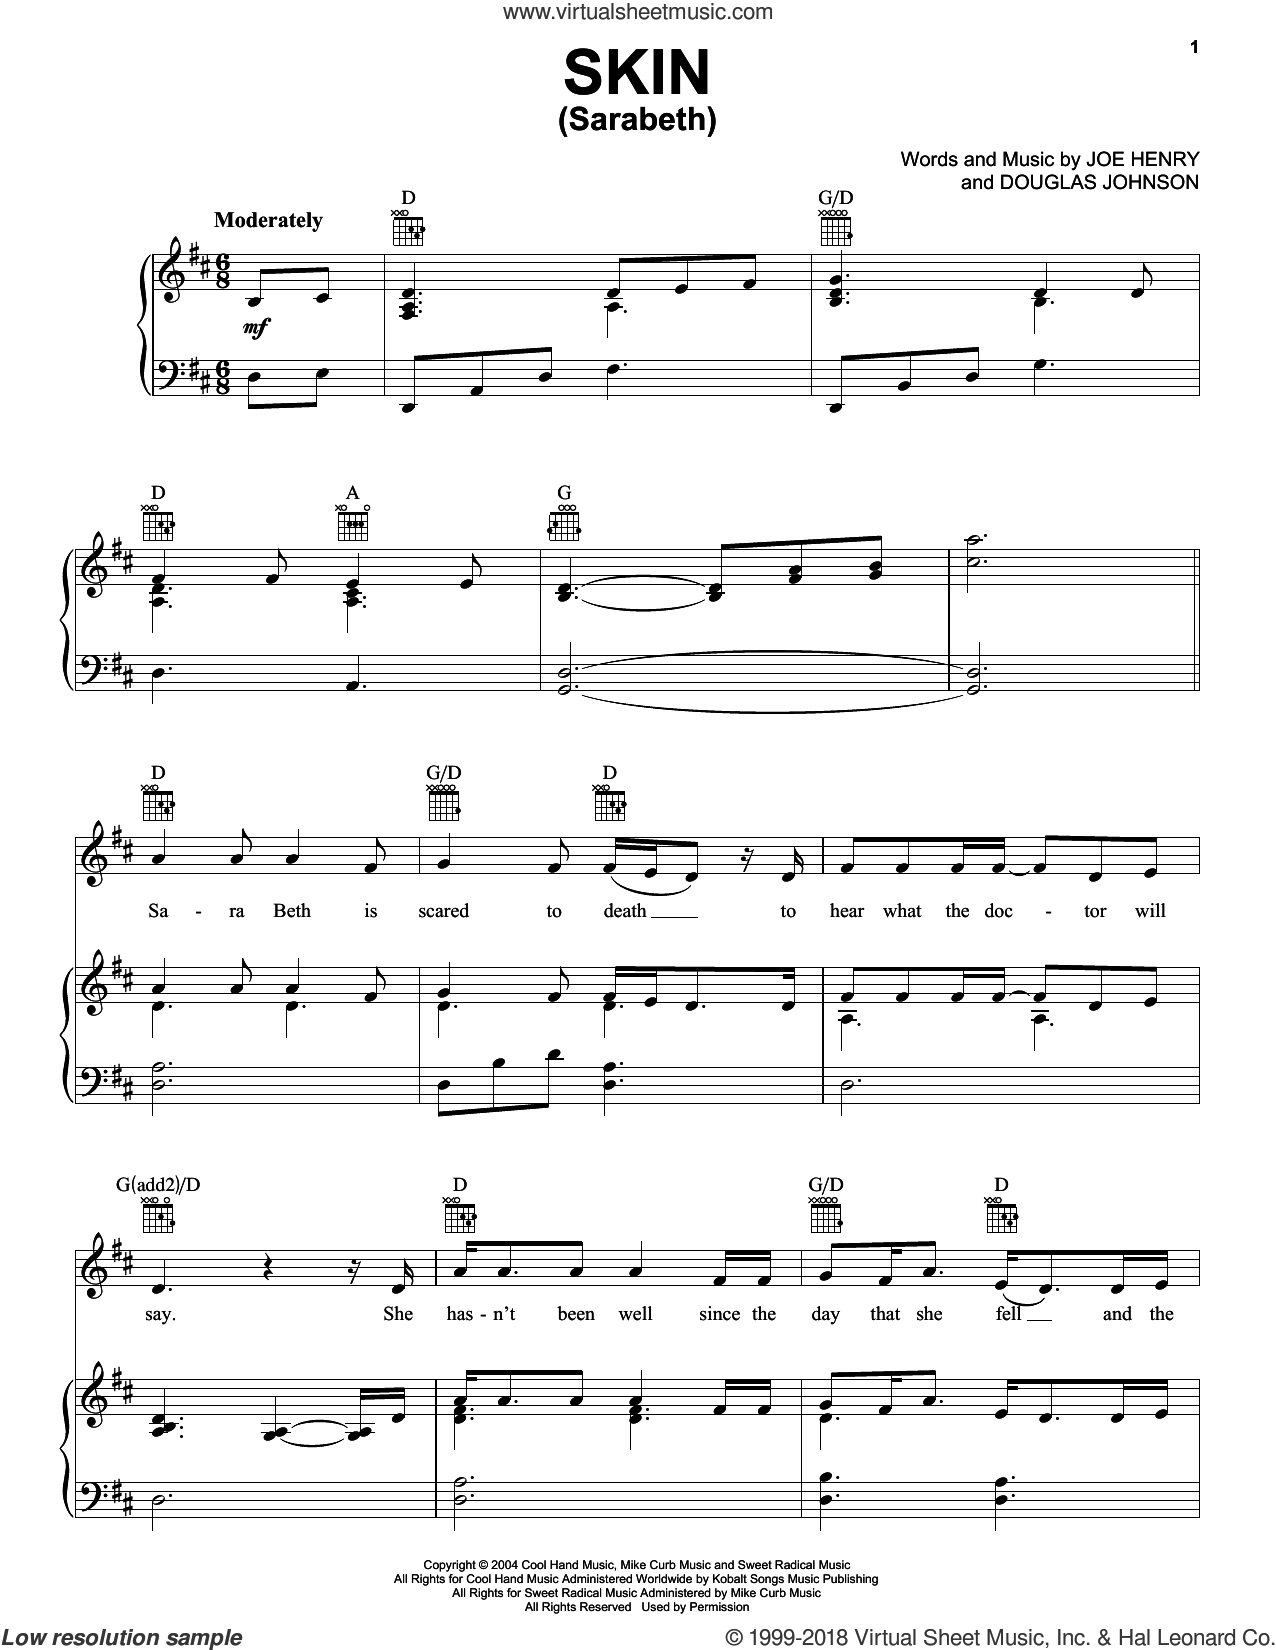 Skin (Sarabeth) sheet music for voice, piano or guitar by Joe Henry and Rascal Flatts. Score Image Preview.